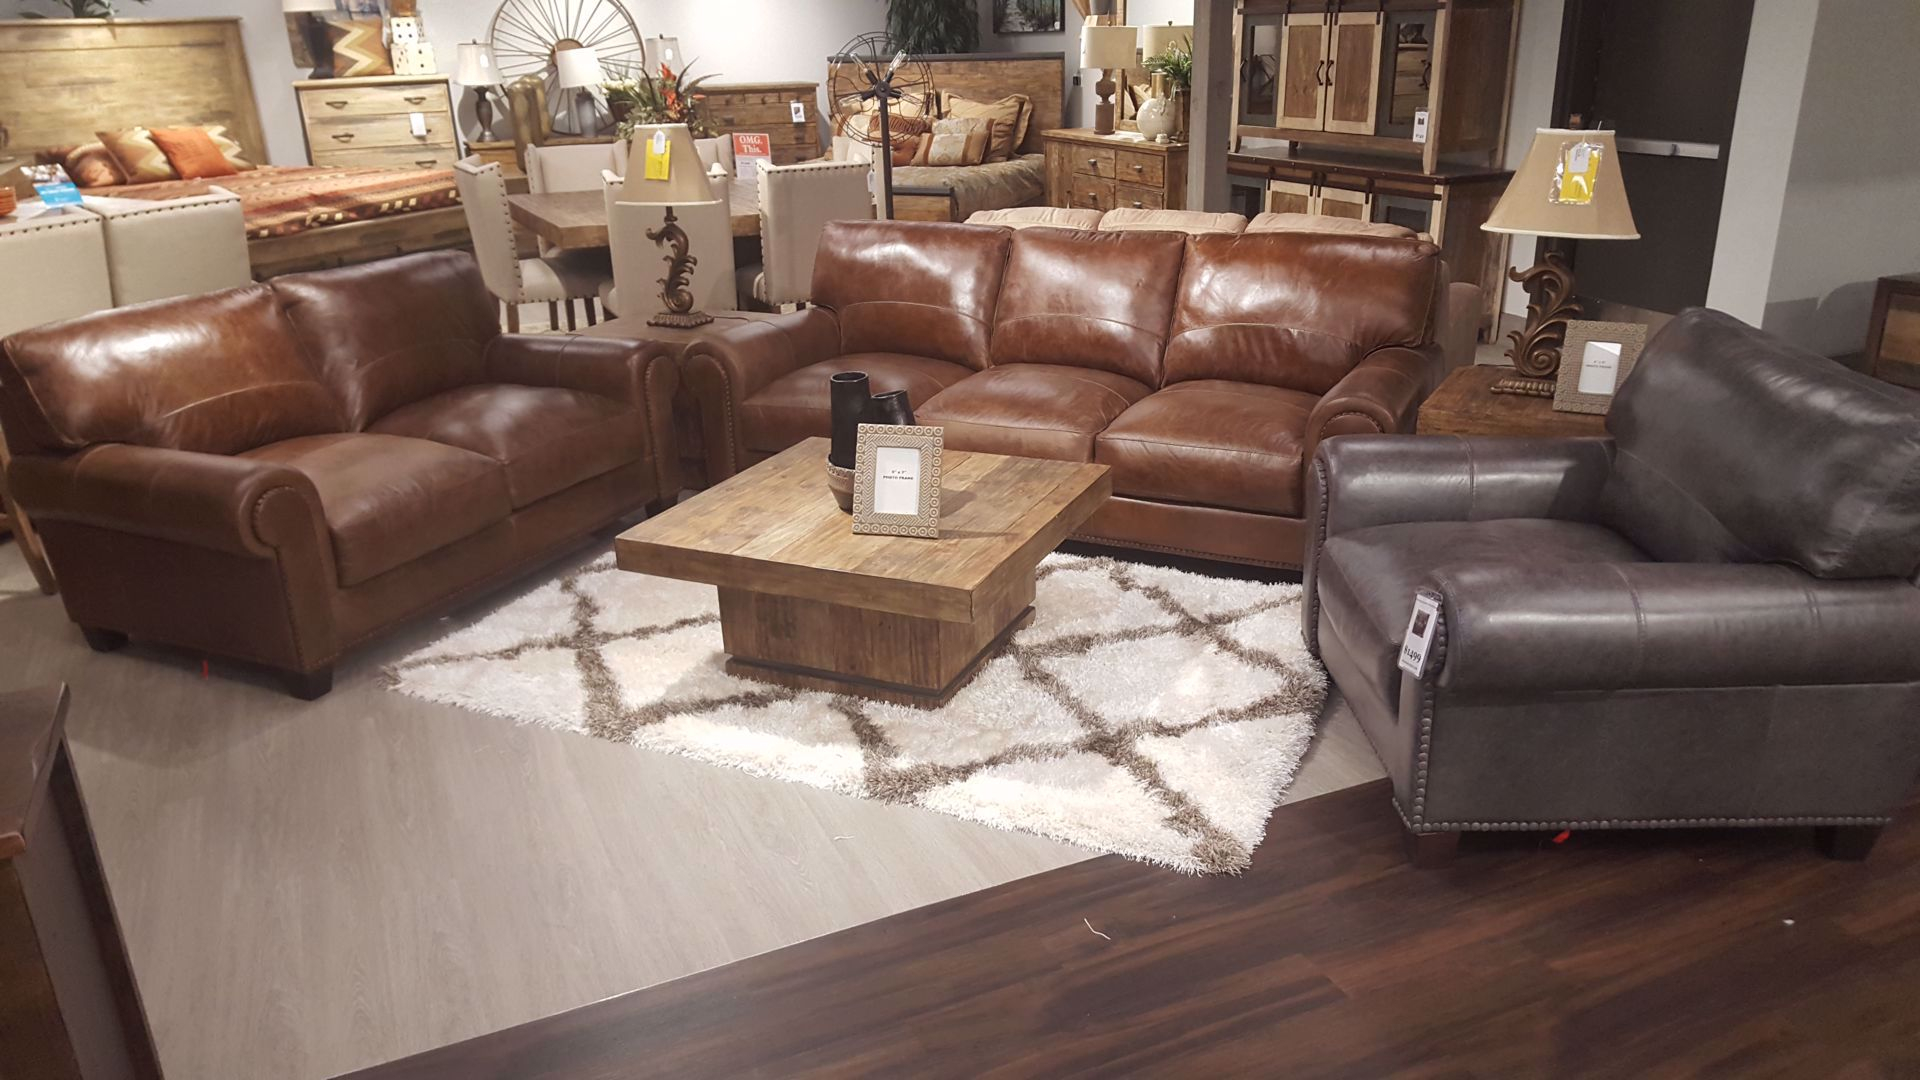 Splendora Tan Leather Living Room Sofa Sets Exclusive Furniture inside Tan Leather Living Room Set